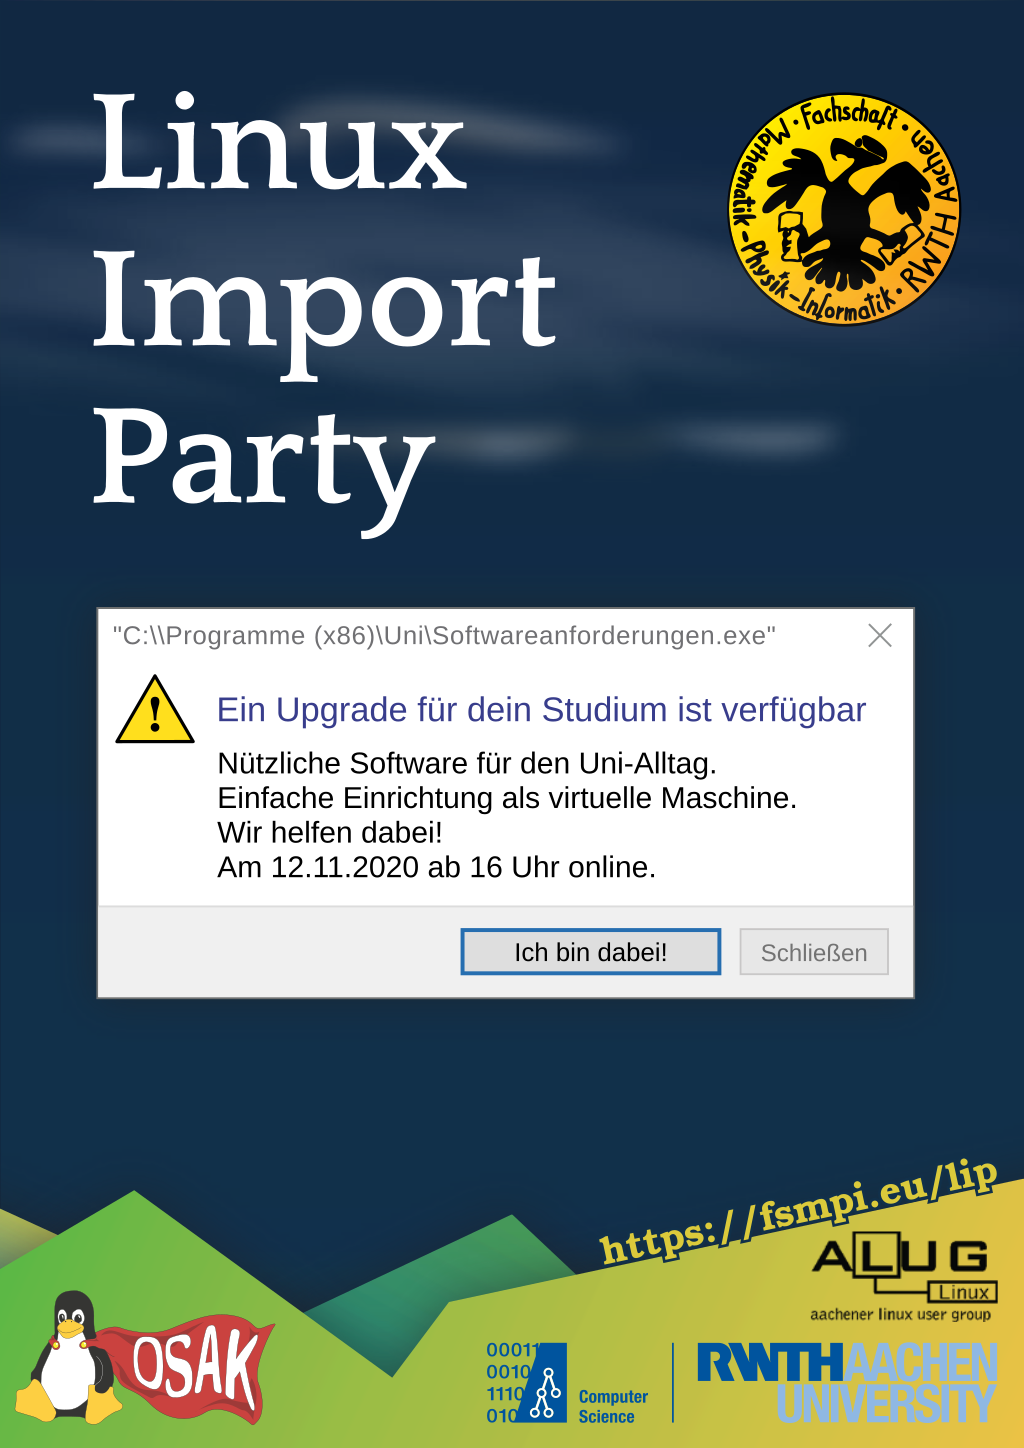 Plakat zur Linux Import Party